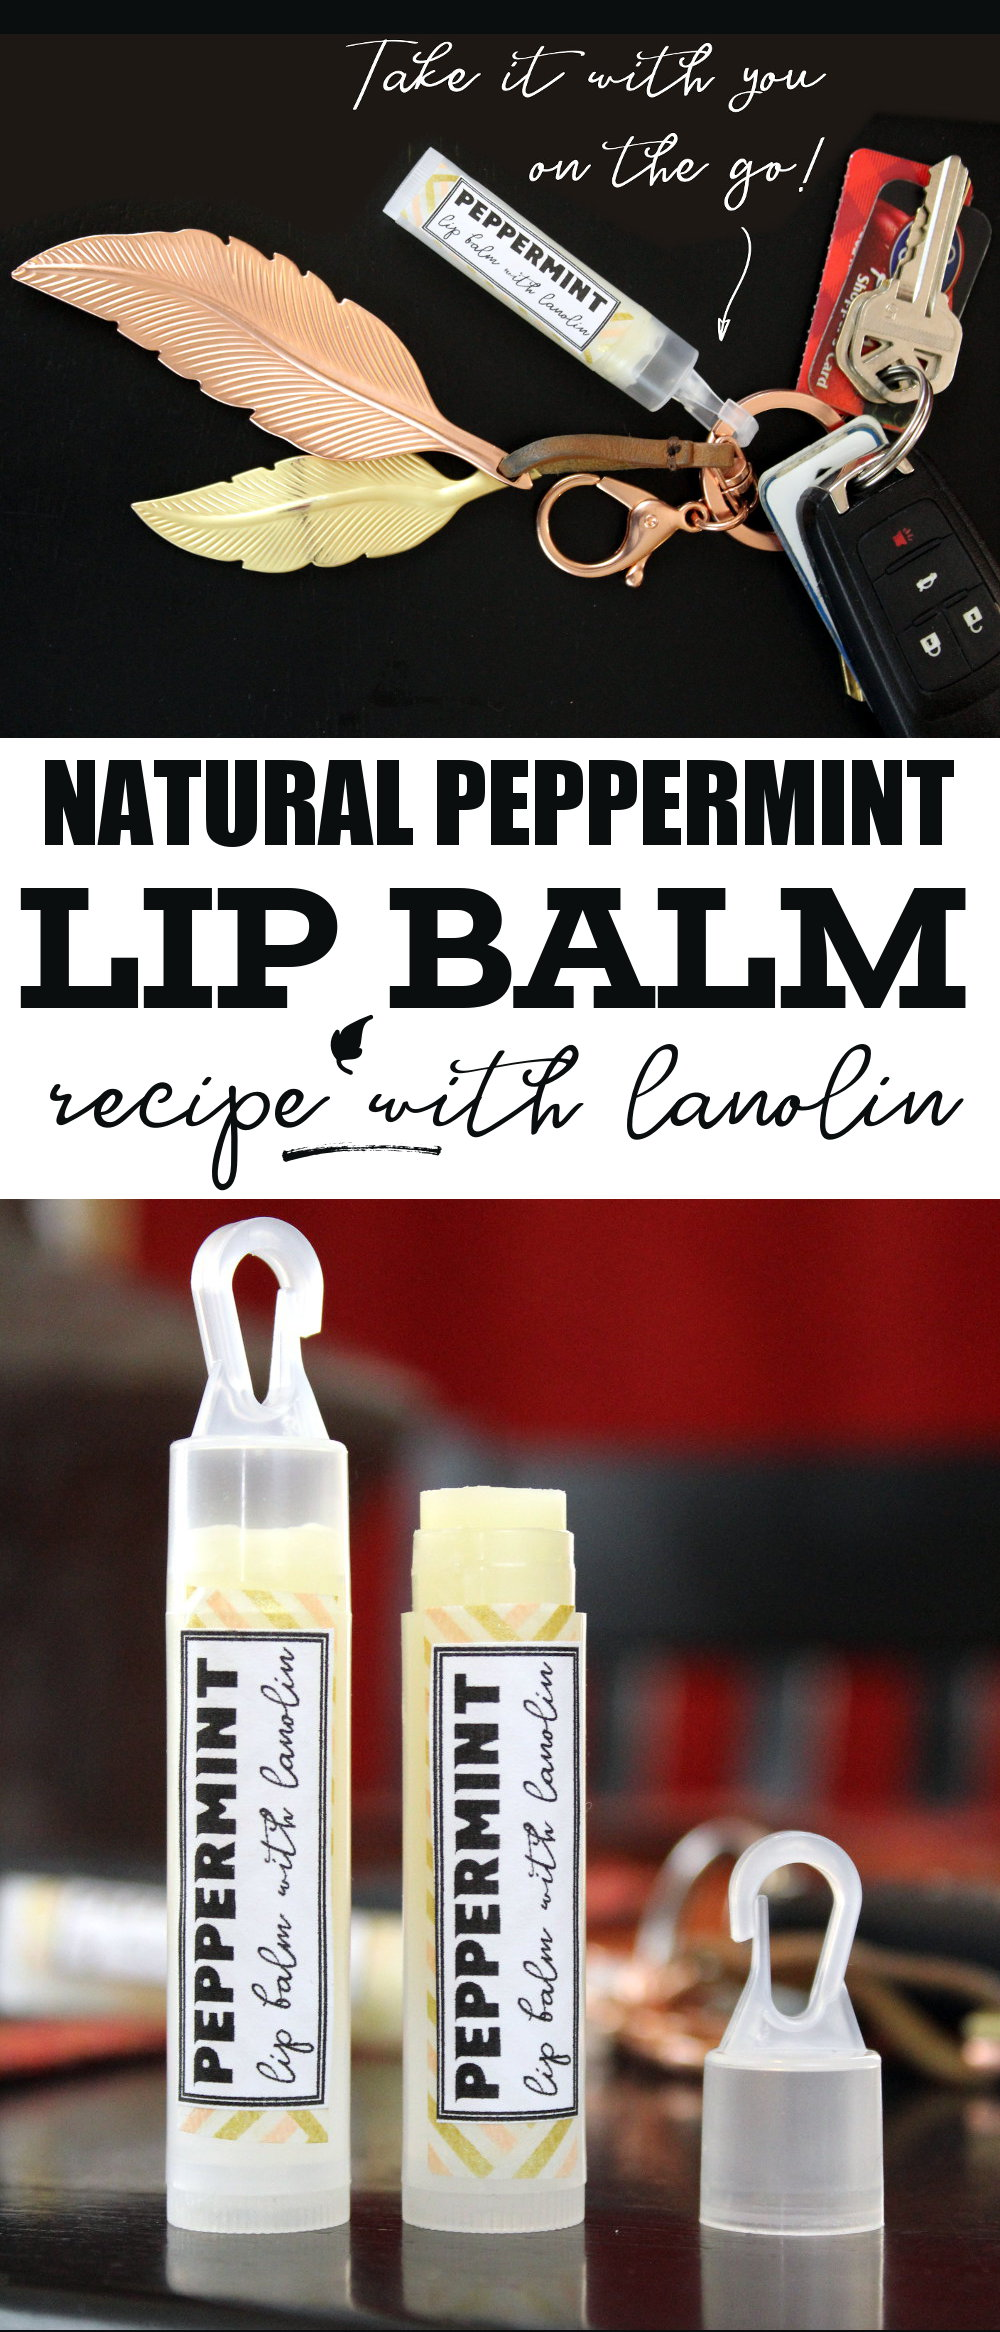 Best Peppermint Lip Balm Recipe! This natural peppermint lip balm recipe is crafted using only natural ingredients that work in tandem to promote skin health. You'll love the velvety smooth glide of this lip balm almost as much as much as its ability to soothe, moisturize and protect dry or chapped lips. While super awesome lip balm tubes with hooked caps mean you always have that protection at your fingertips wherever the day takes you. #diy #lipbalm #lipbalmrecipe